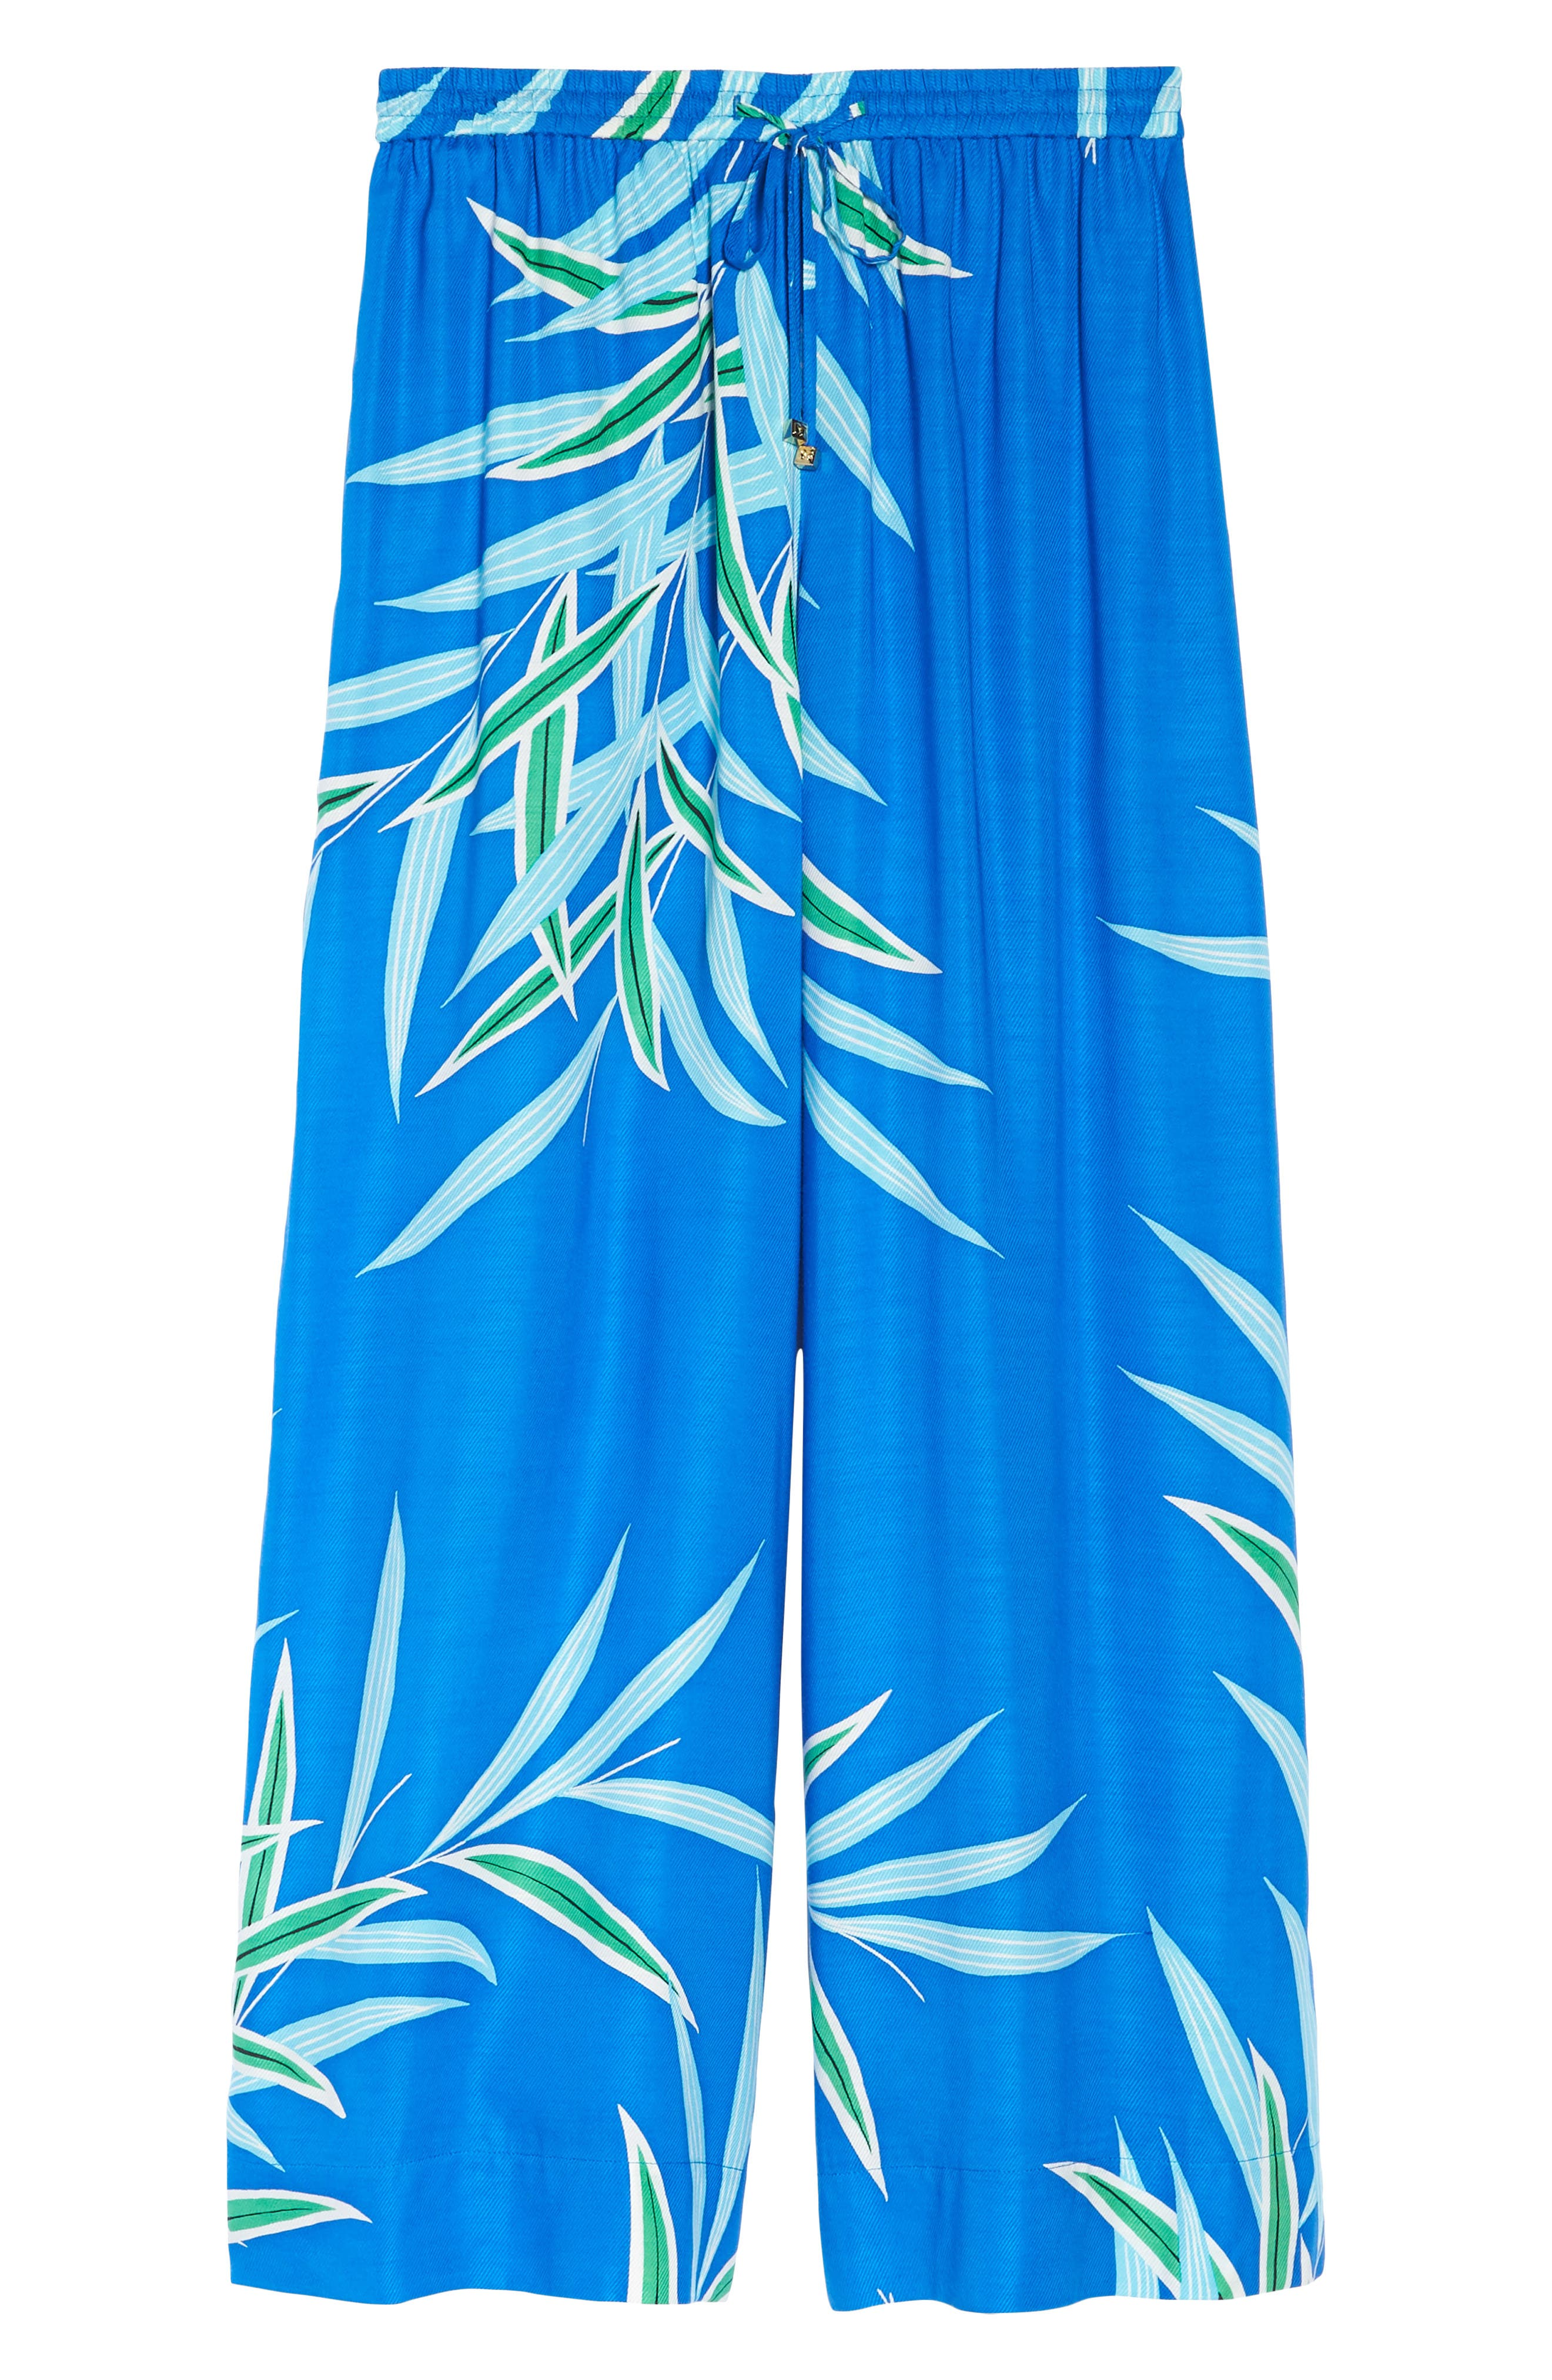 Beach Cover-Up Culottes,                             Alternate thumbnail 6, color,                             QUINCY BLUE